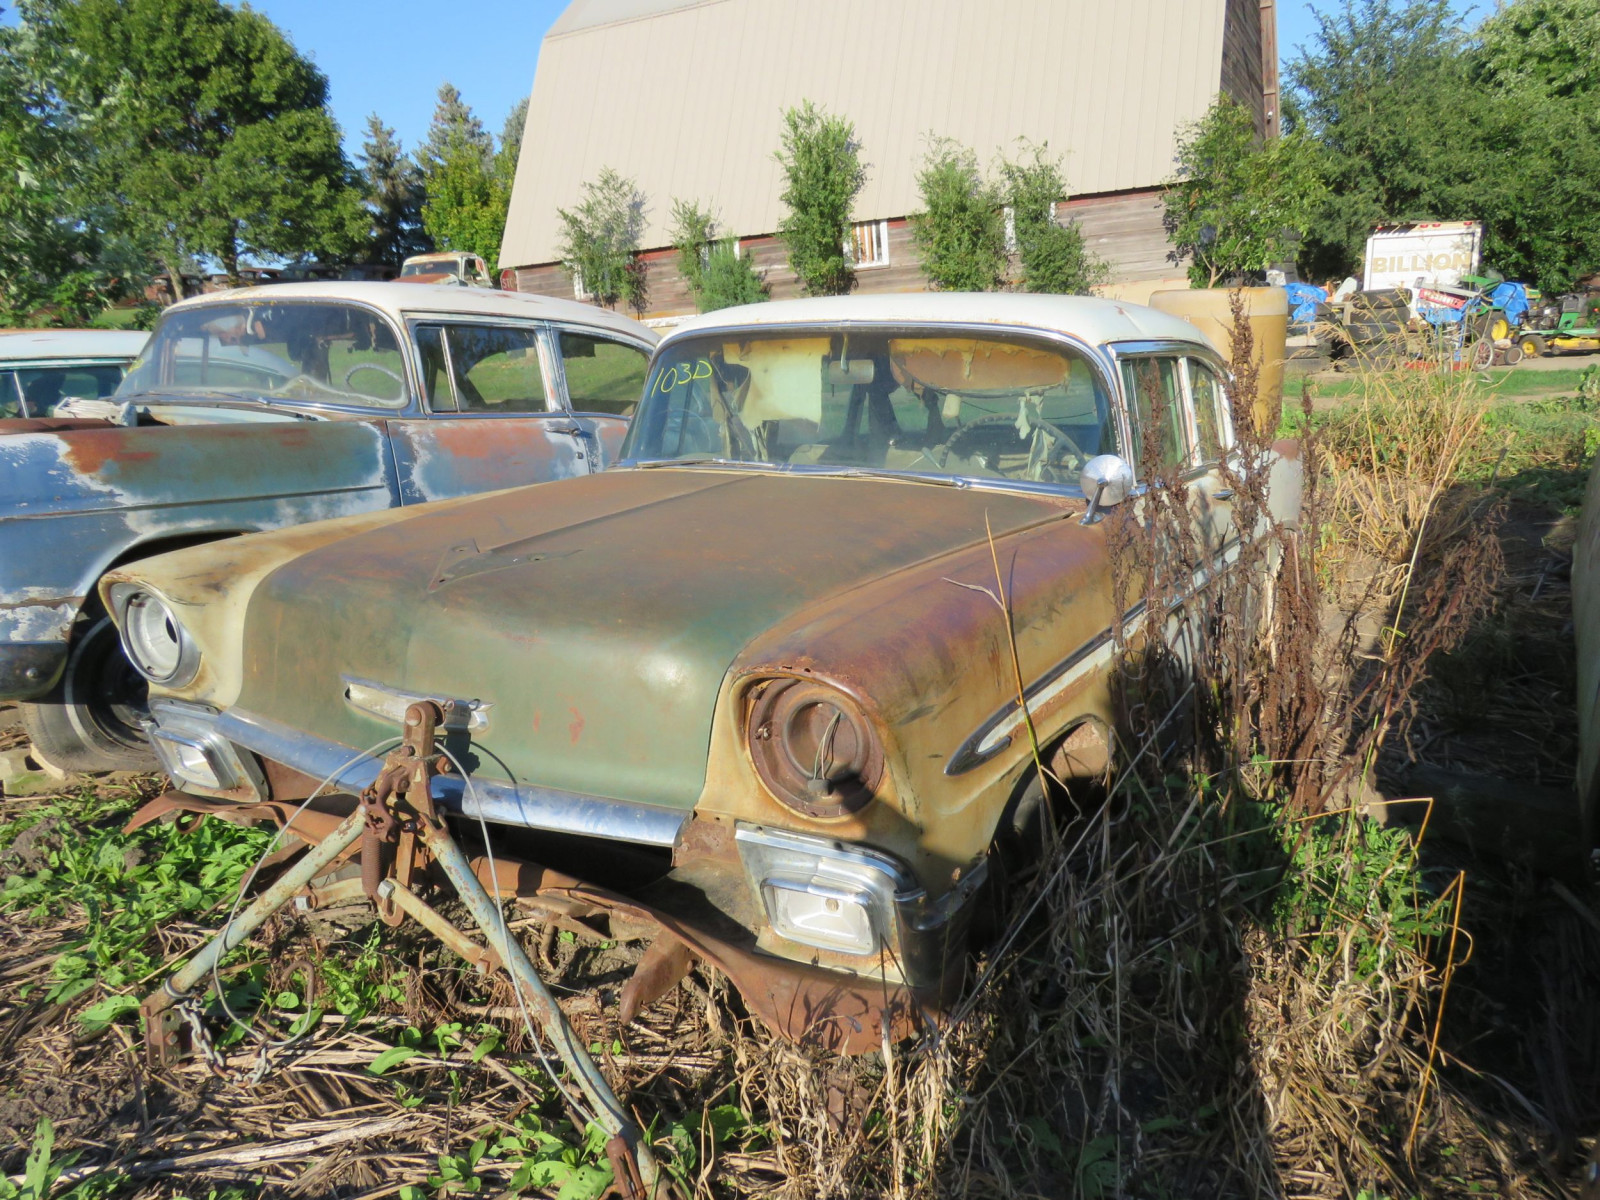 1956 Chevrolet Belair 4dr Sedan for Project or Parts - Image 2